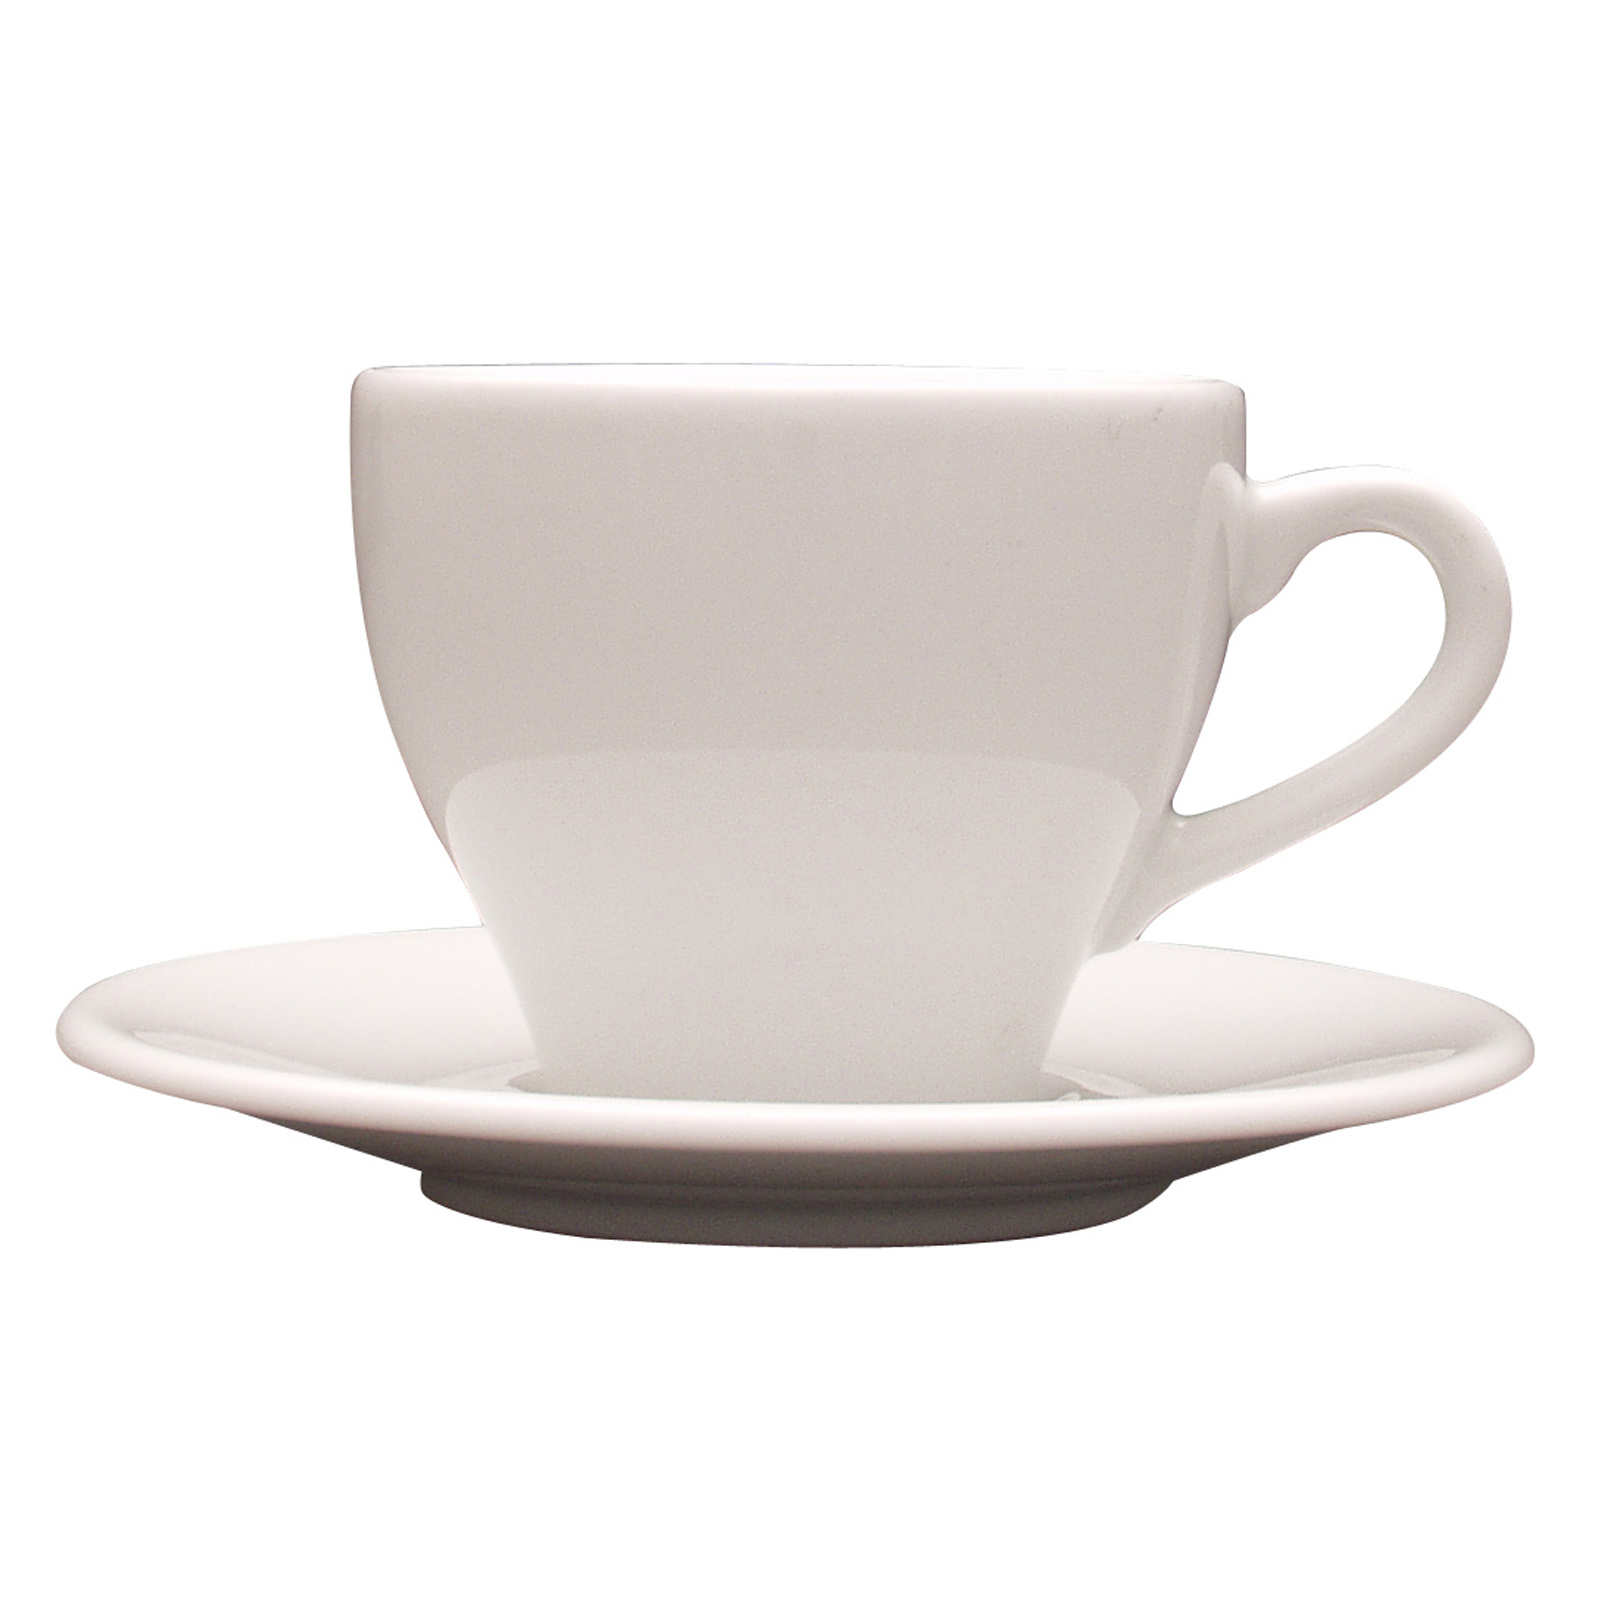 Set of 24 Paula Cappuccino Cups by Lubiana